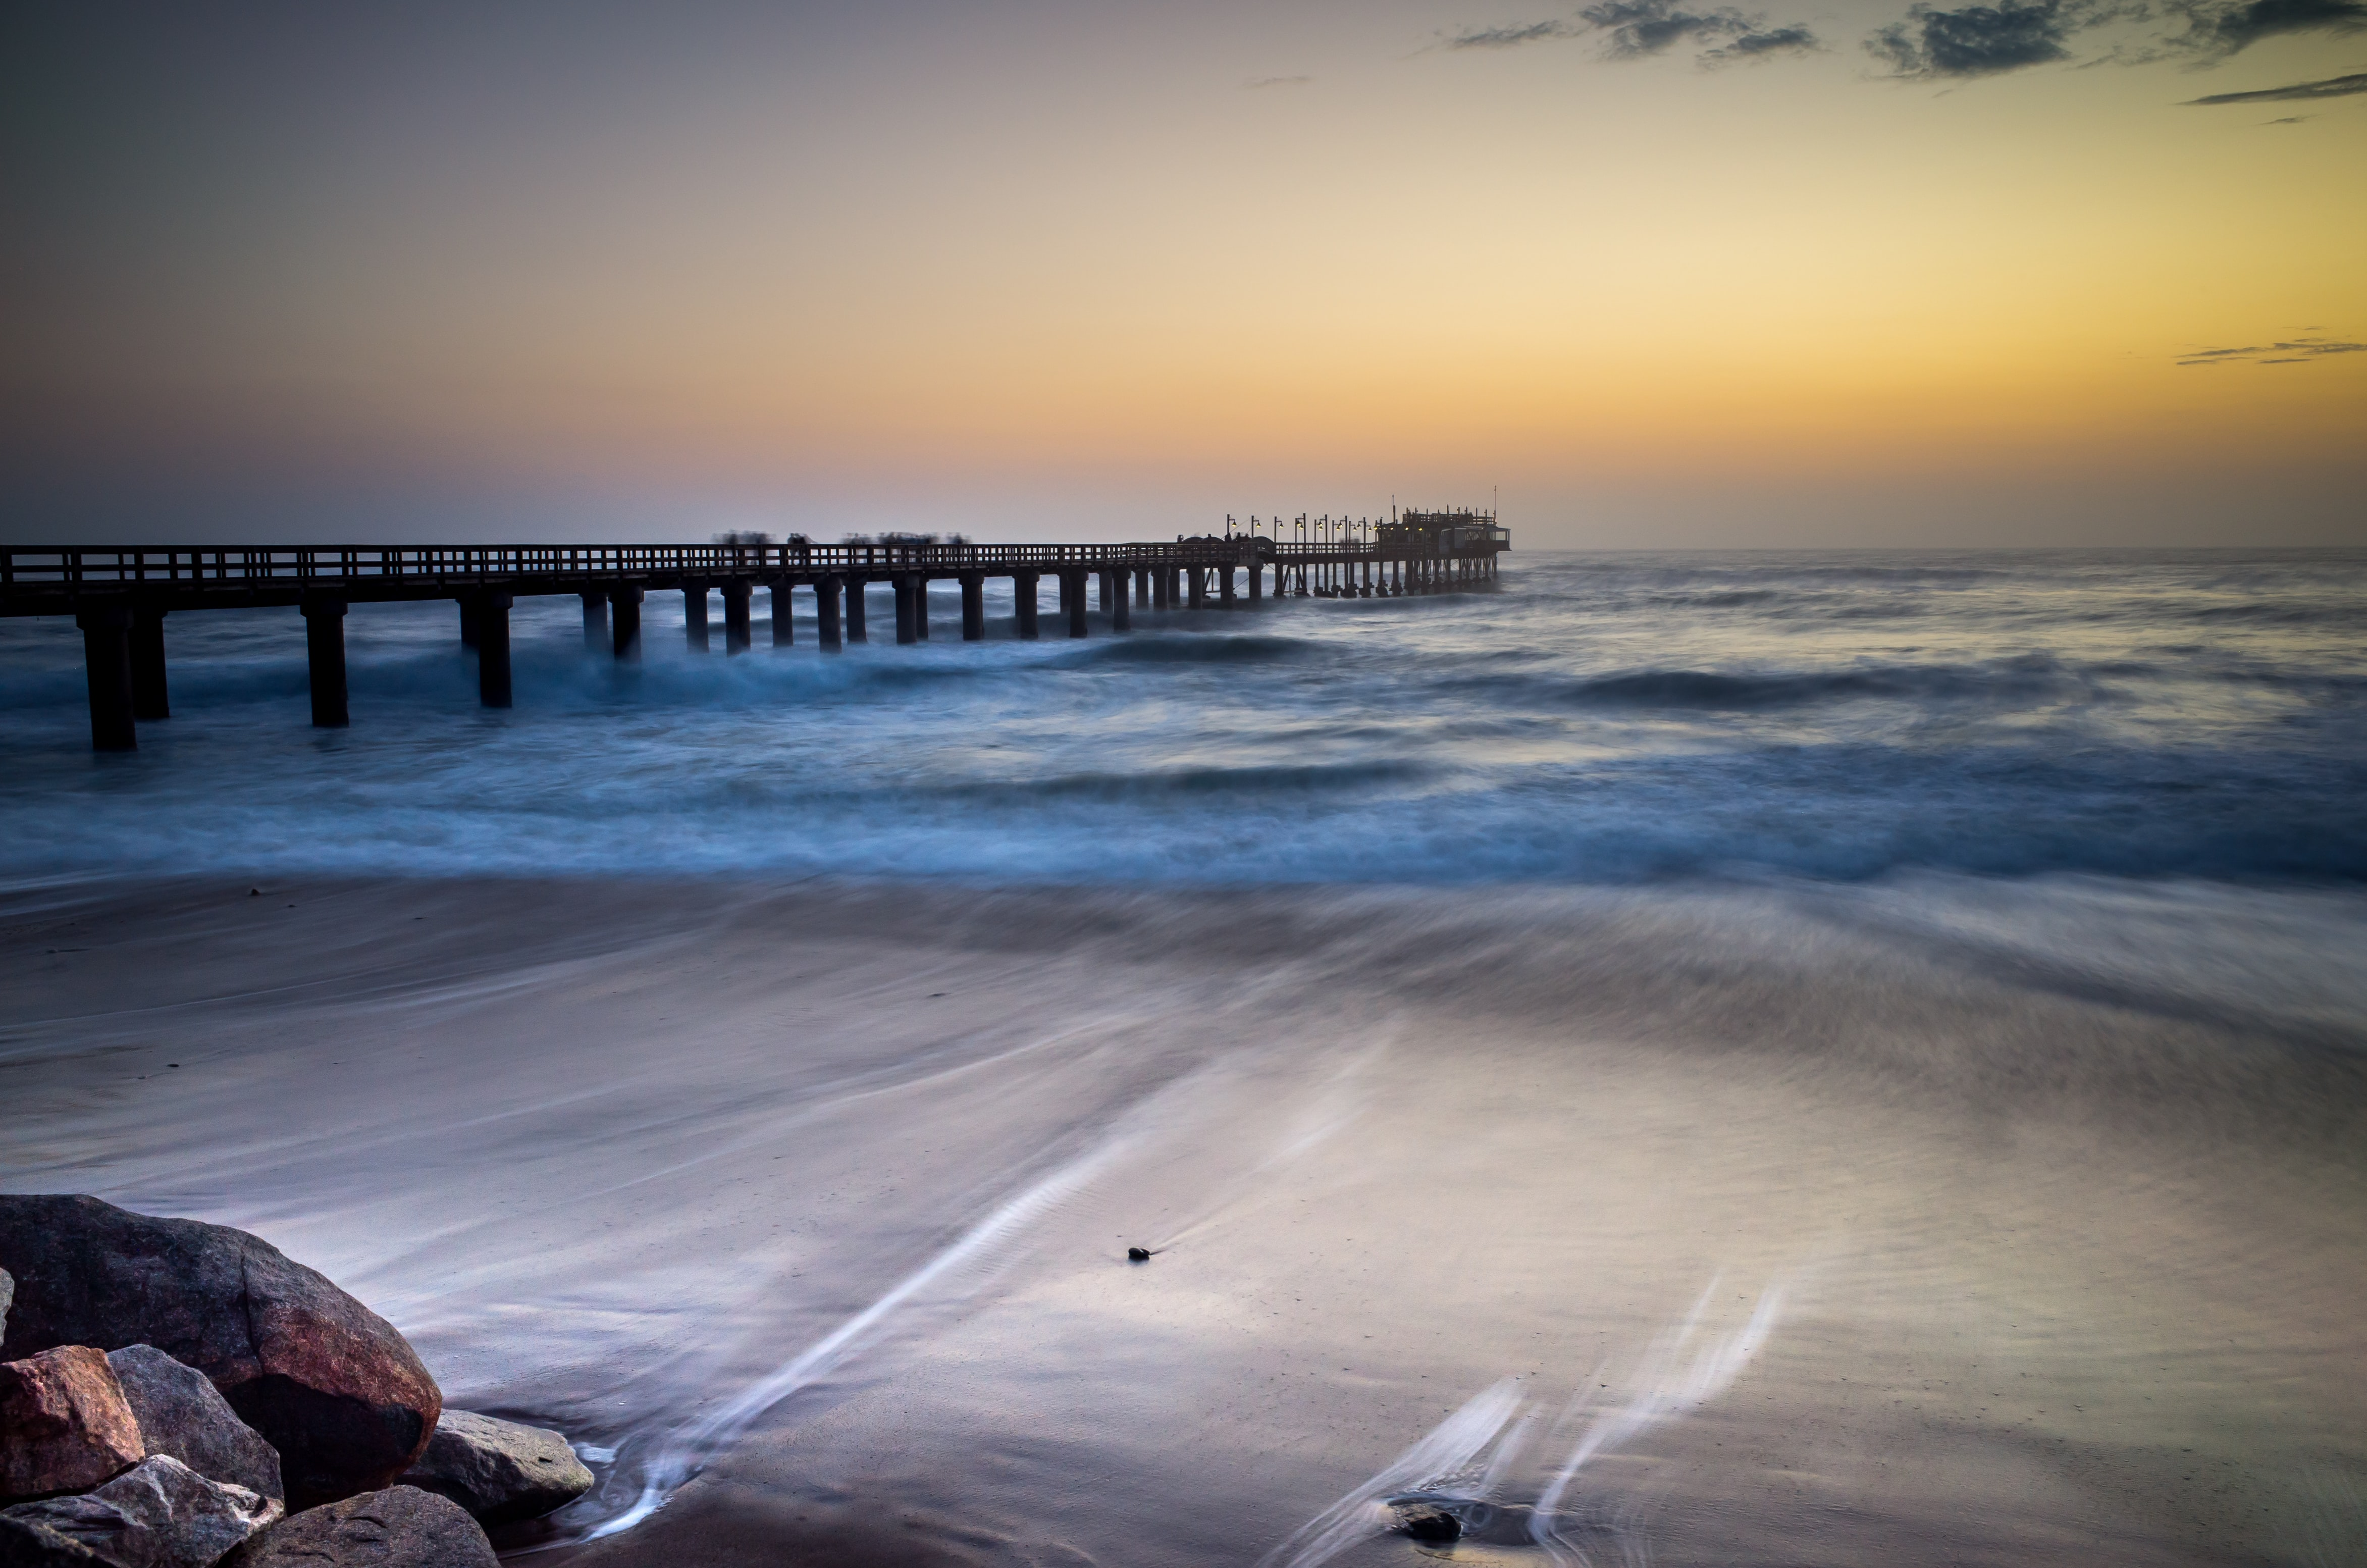 Dusk from the beach pier with low waves in Swakopmund, Namibie